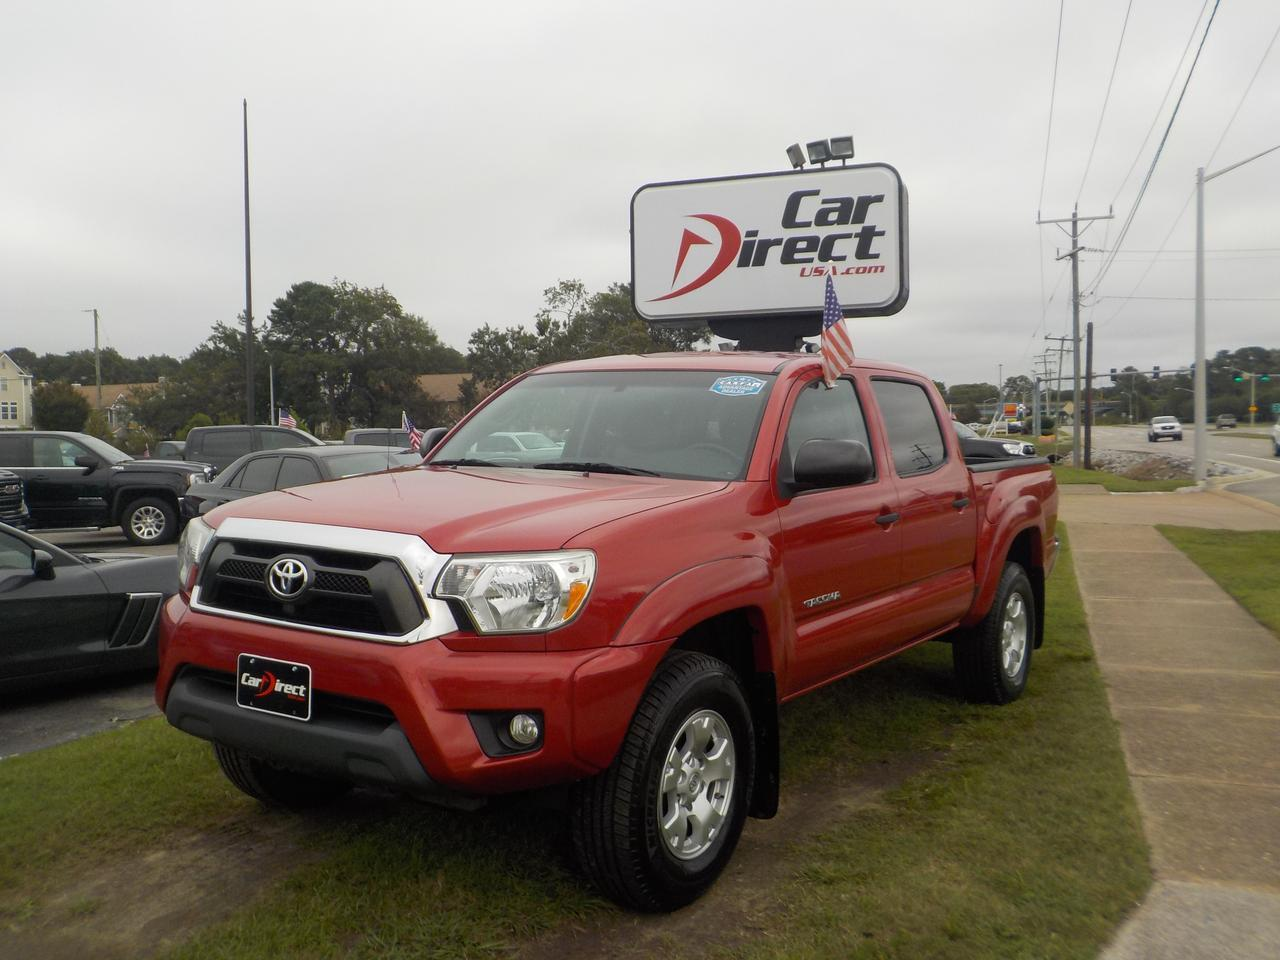 2014 TOYOTA TACOMA SR5 DOUBLE CAB 4X4, ONE OWNER, MANUAL TRANSMISSION, TOW PACKAGE, NAVIGATION, ONLY 59k MILES! Virginia Beach VA